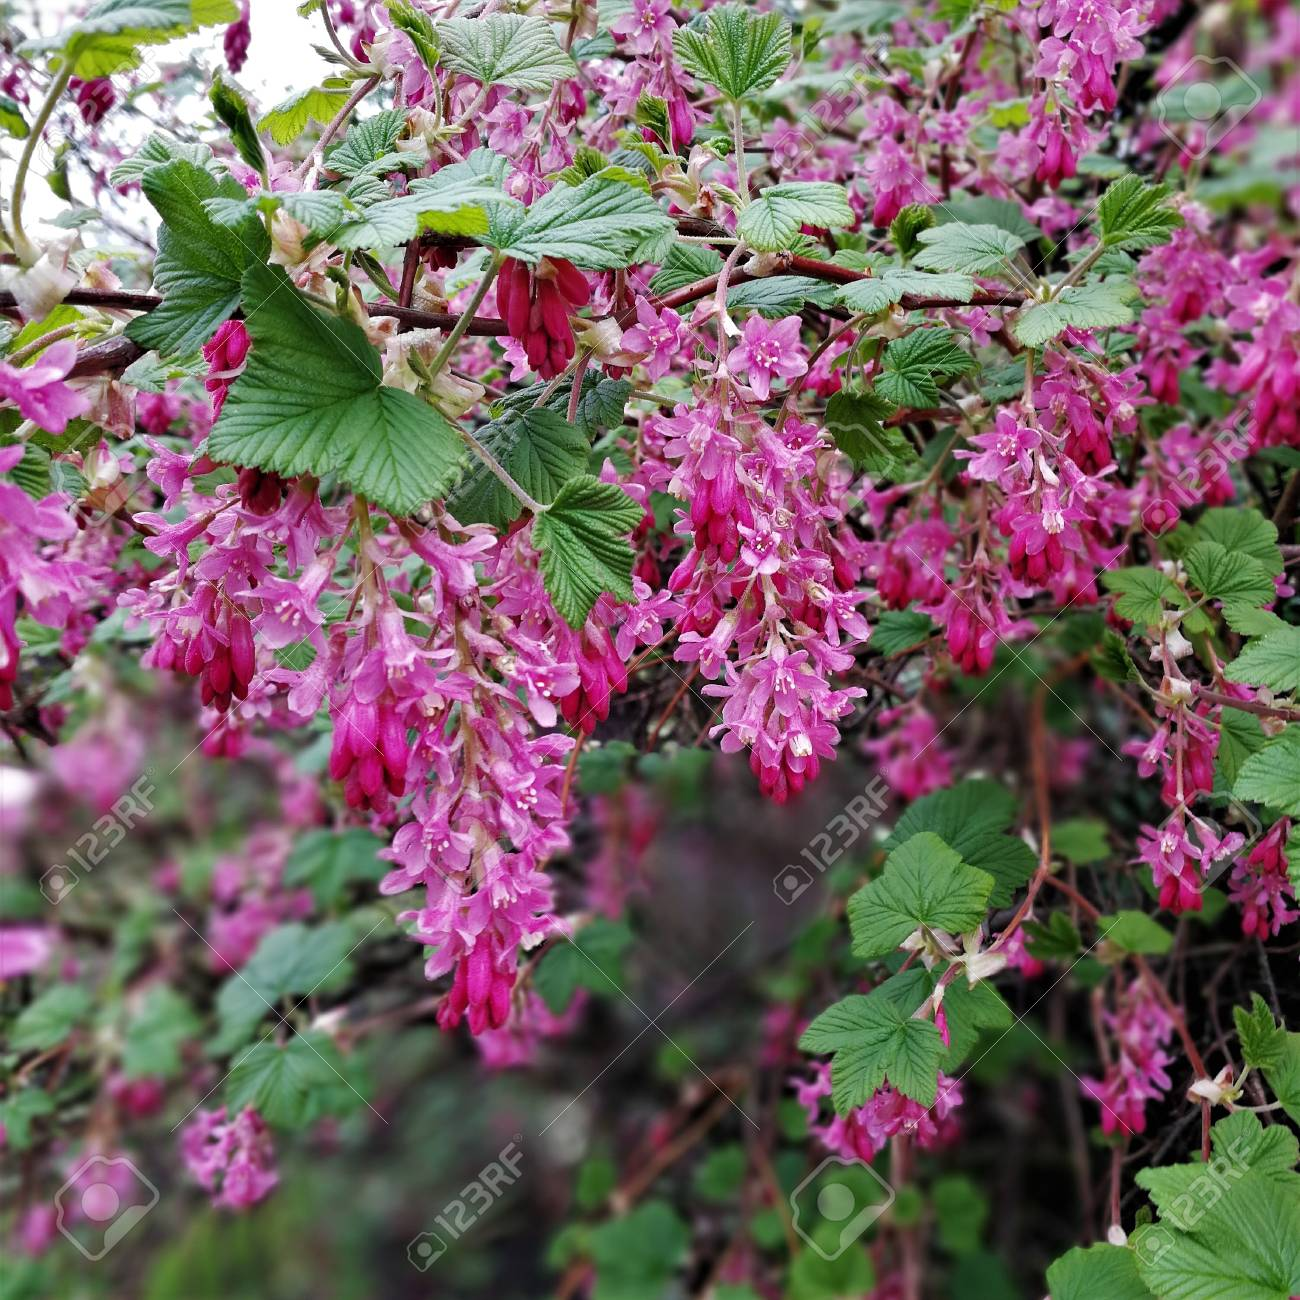 Pink Flowers On A Flowering Redcurrent Bush In Spring Stock Photo